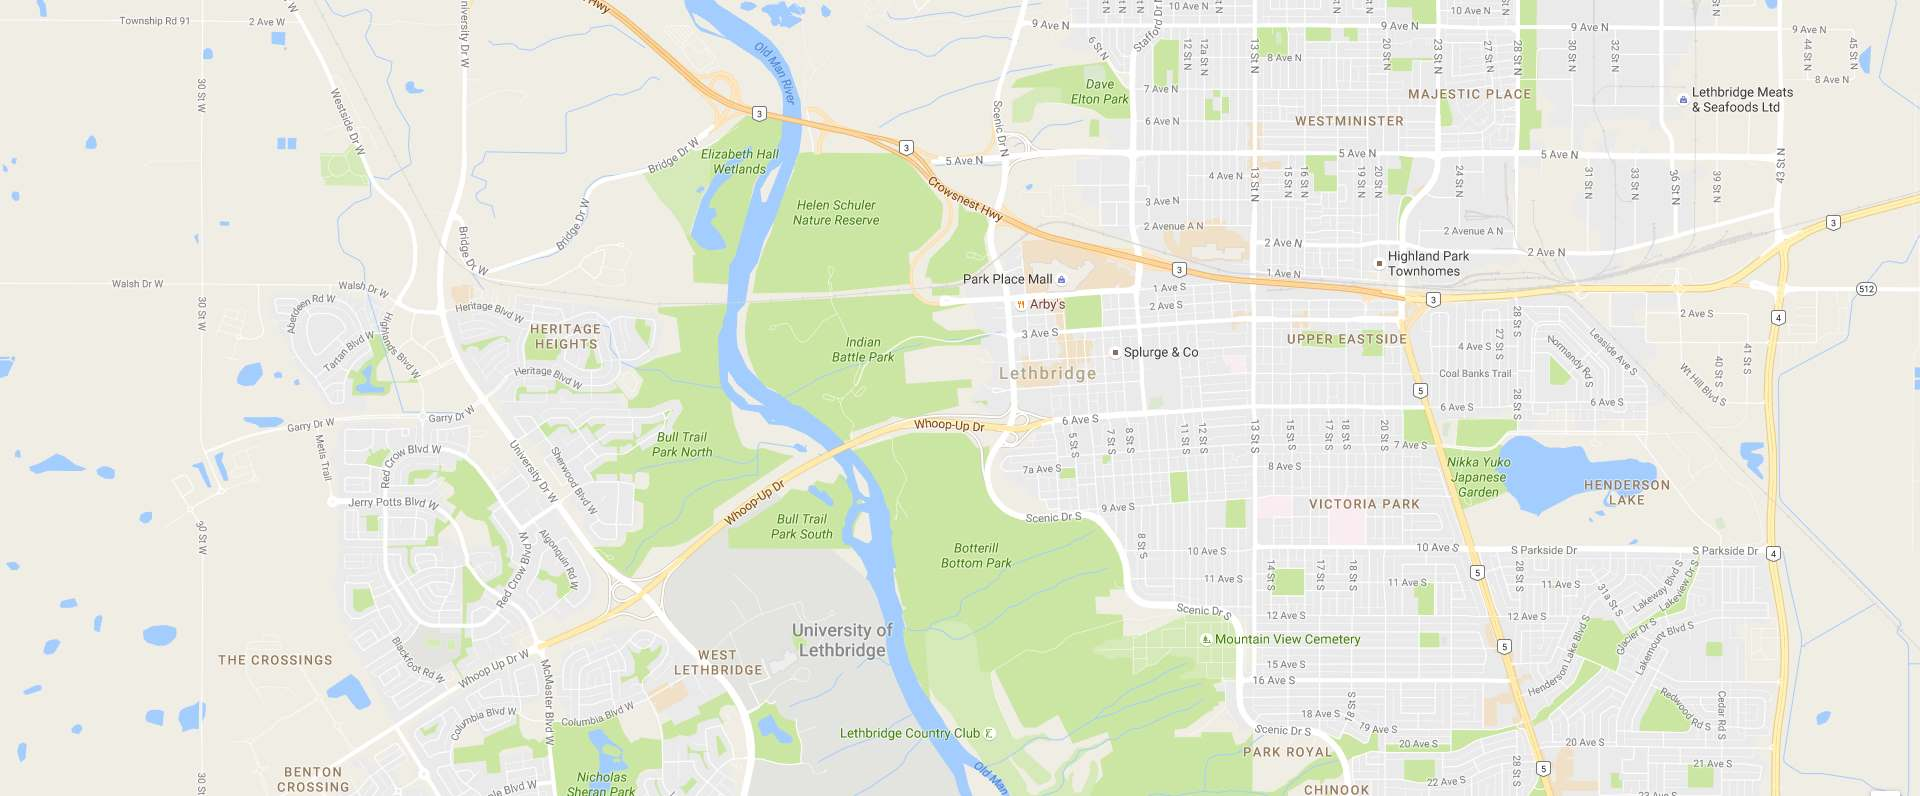 Google map of Lethbridge